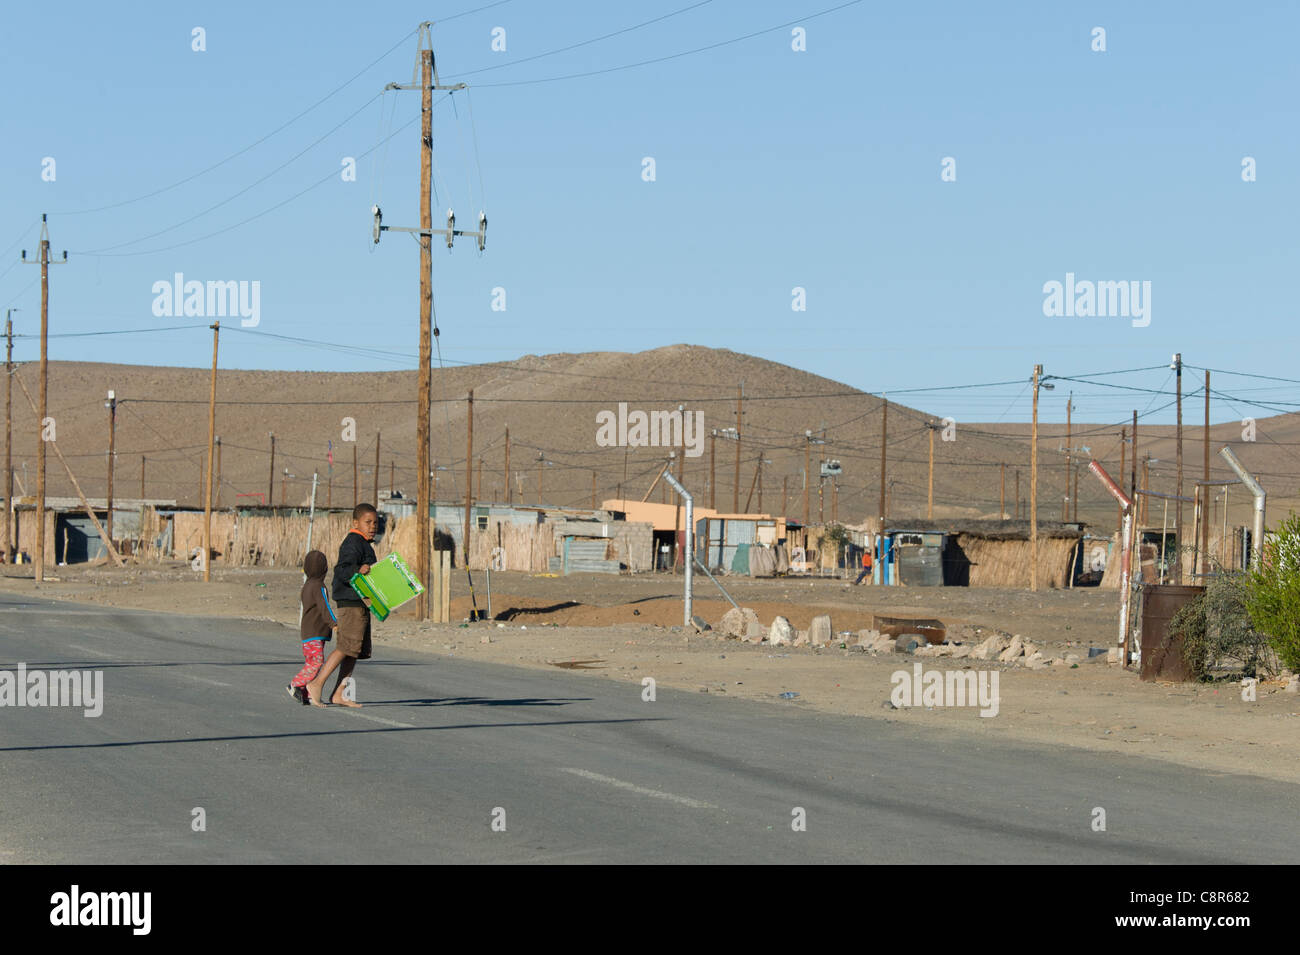 Children crossing a road in Noordoewer Namibia - Stock Image